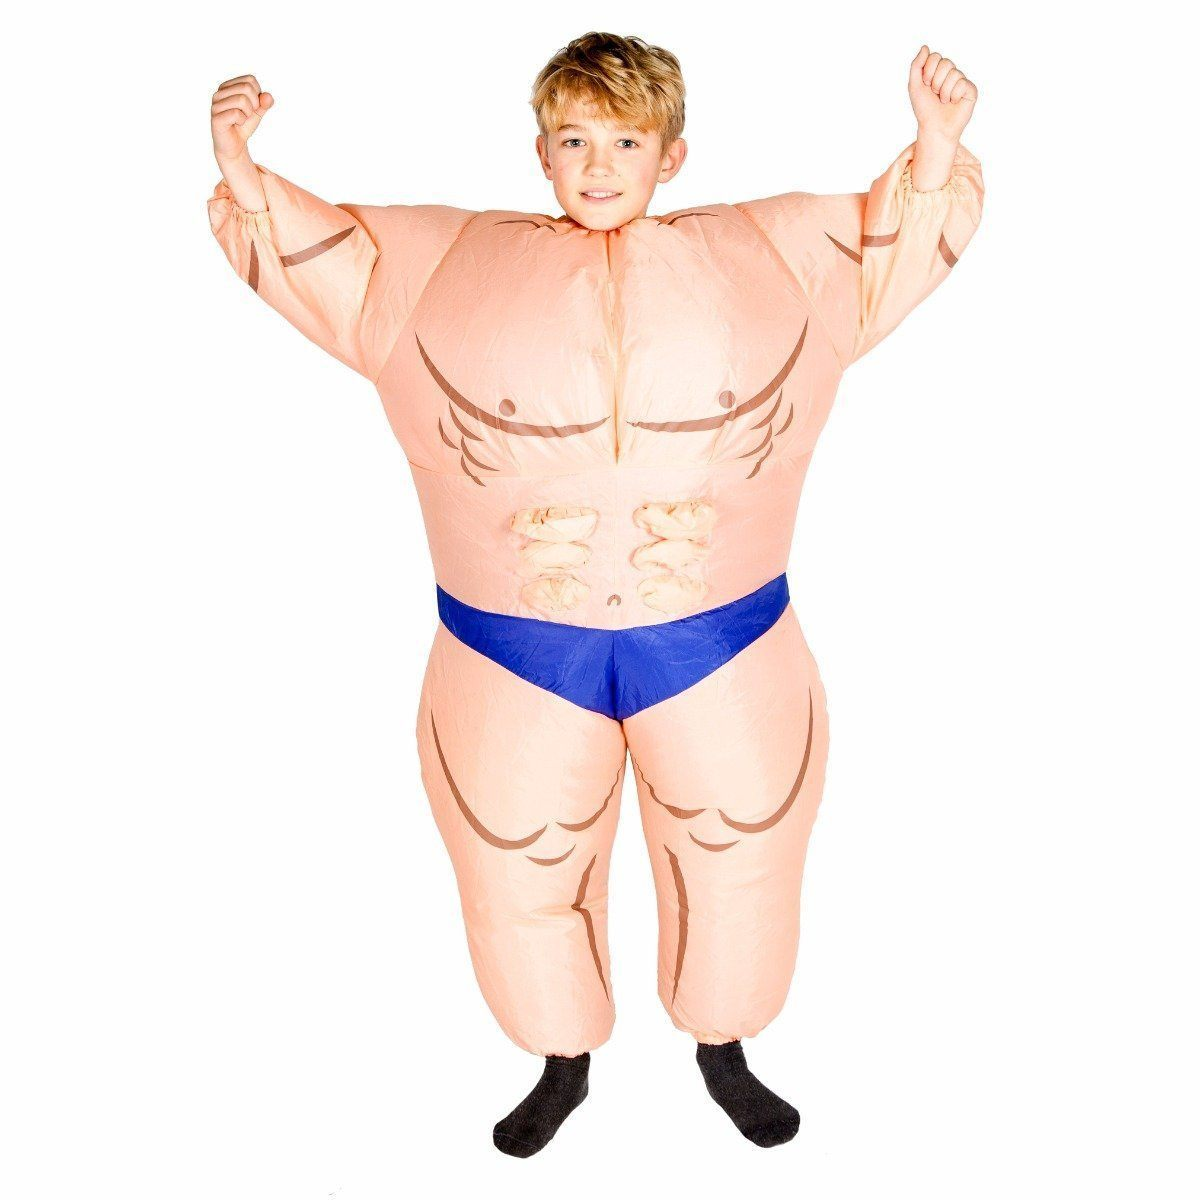 Fancy Dress - Kids Inflatable Muscle Suit Costume